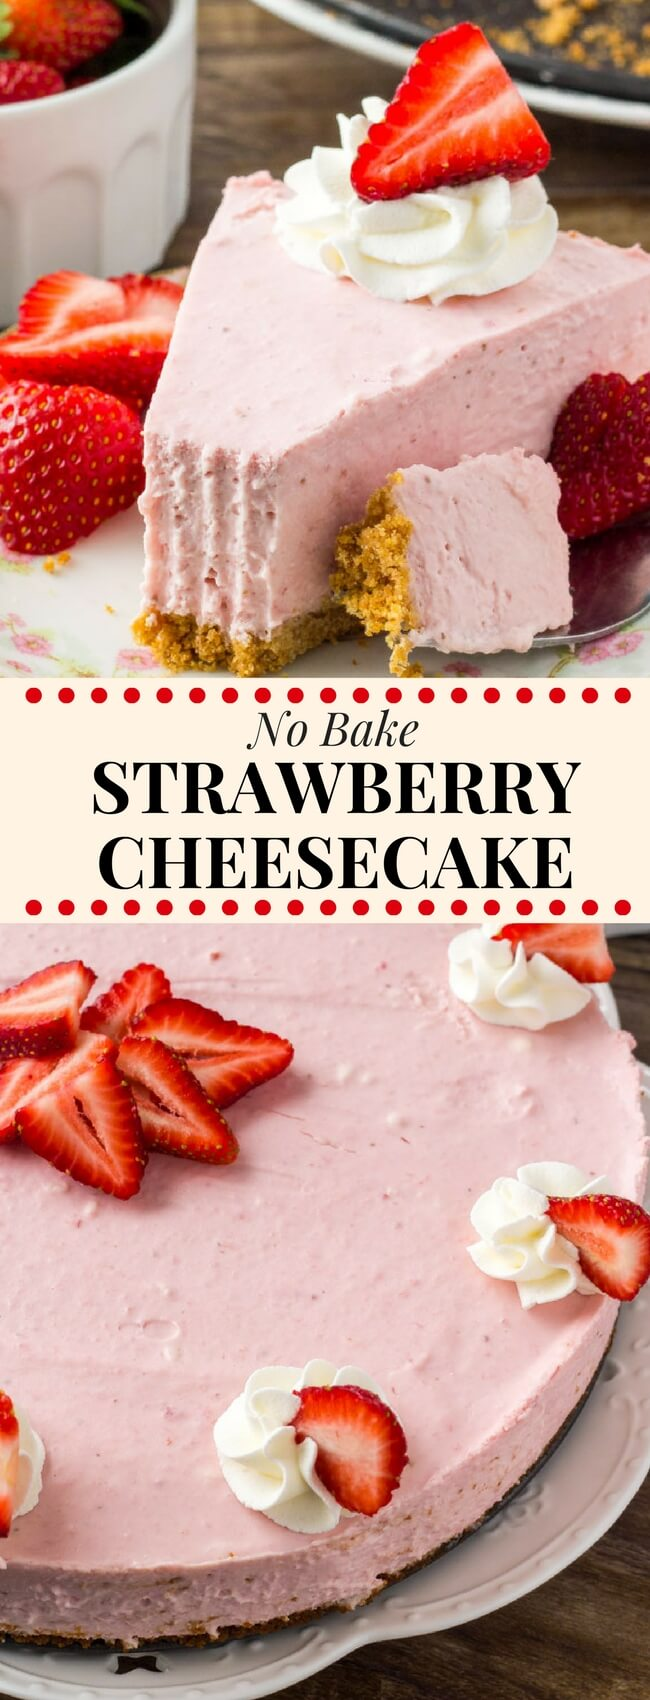 This no bake strawberry cheesecake is extra creamy and bursting with strawberries. It's a super easy to make and turns out with a luscious texture, crunchy graham cracker crust, and delicious strawberry flavor that no one can resist! #nobake #cheesecake #strawberries #strawberriesandcream #recipes #spring #mothersday #easy